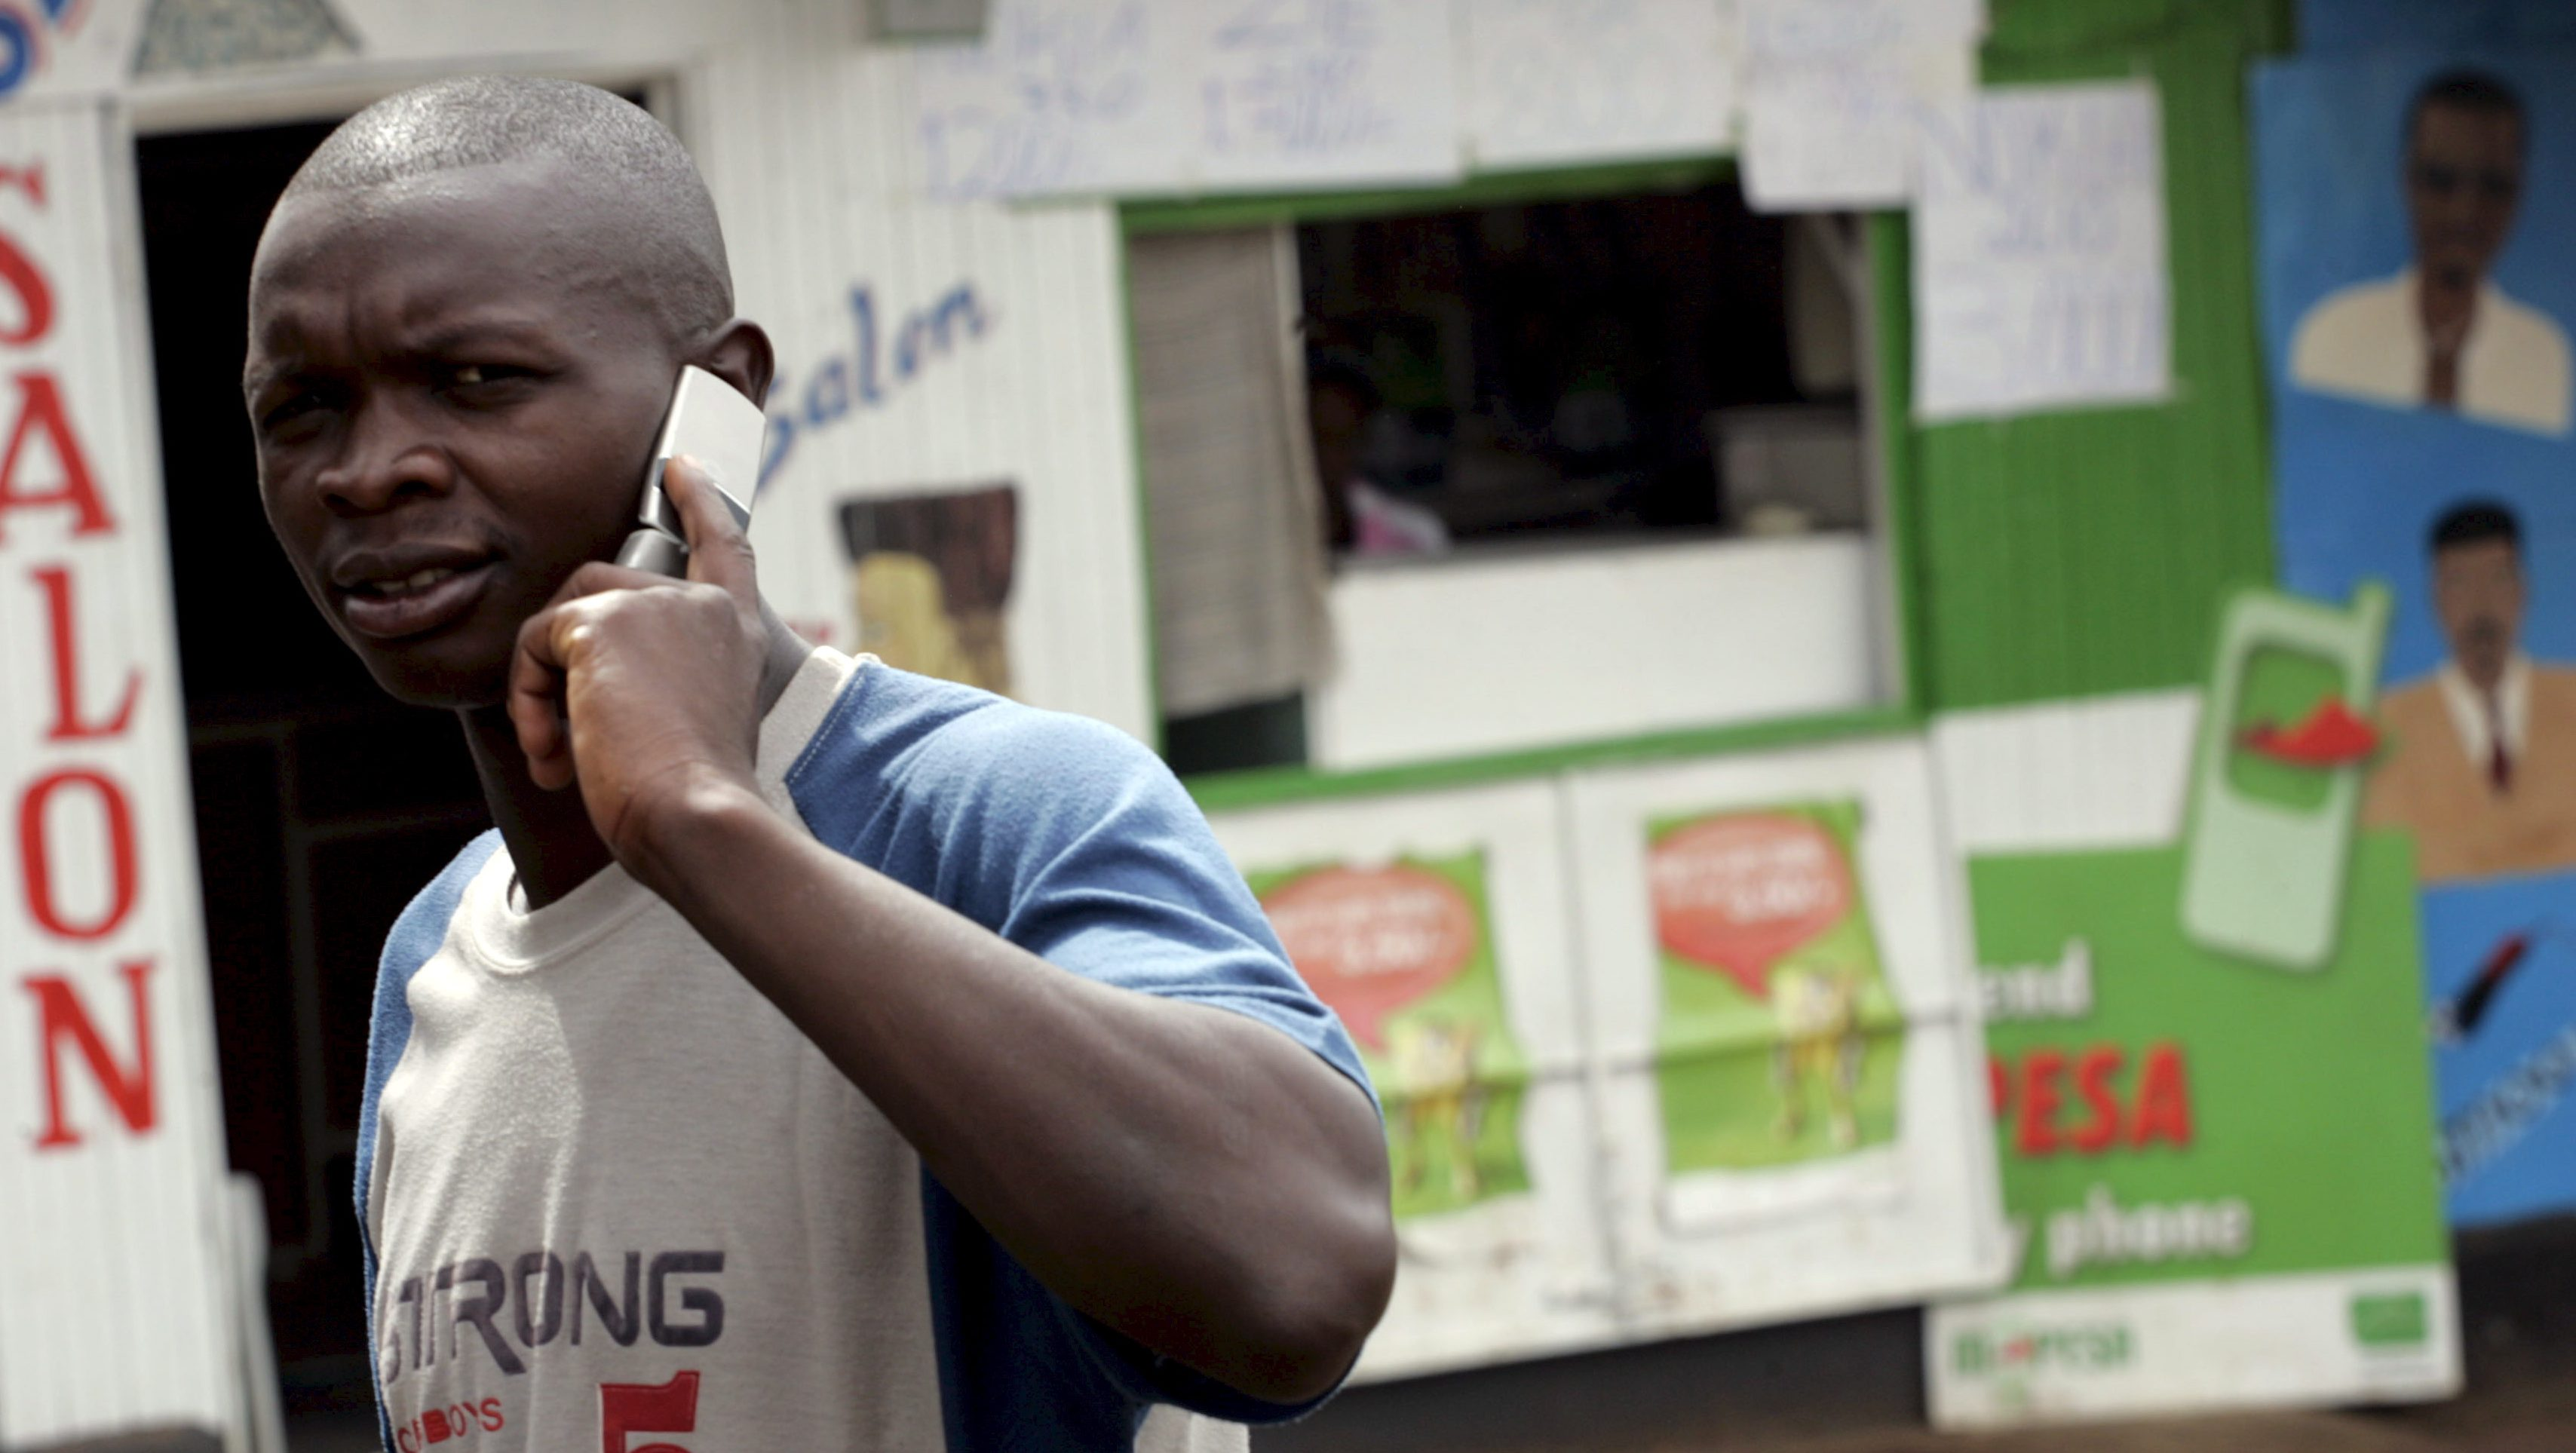 A Kenyan man talks on his mobile while walking through the high density suburb of Kangami in Nairobi, Kenya on 26 March 2008. The Kenyan government plans to sell 25 per cent of its stake in the highly profitable mobile operator Safaricom by holding east Africa's largest ever IPO which is scheduled to begin selling shares on 28 December 2008.